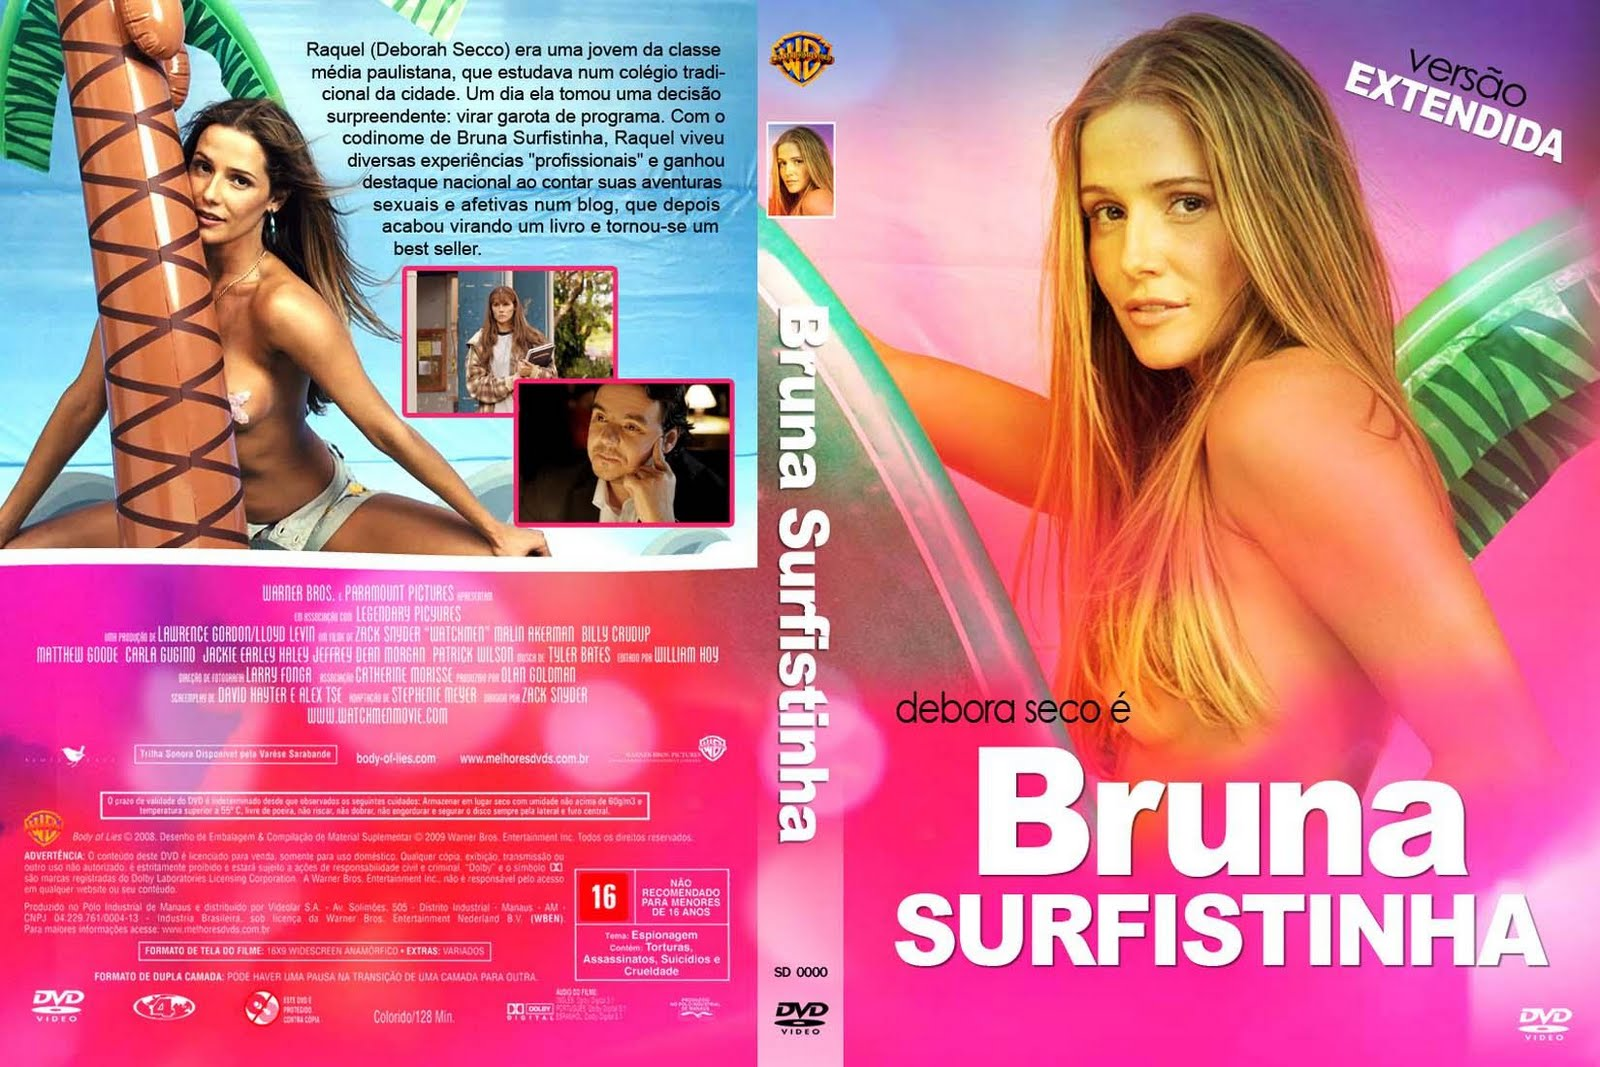 Wanna filme porno bruna surfistinha damn